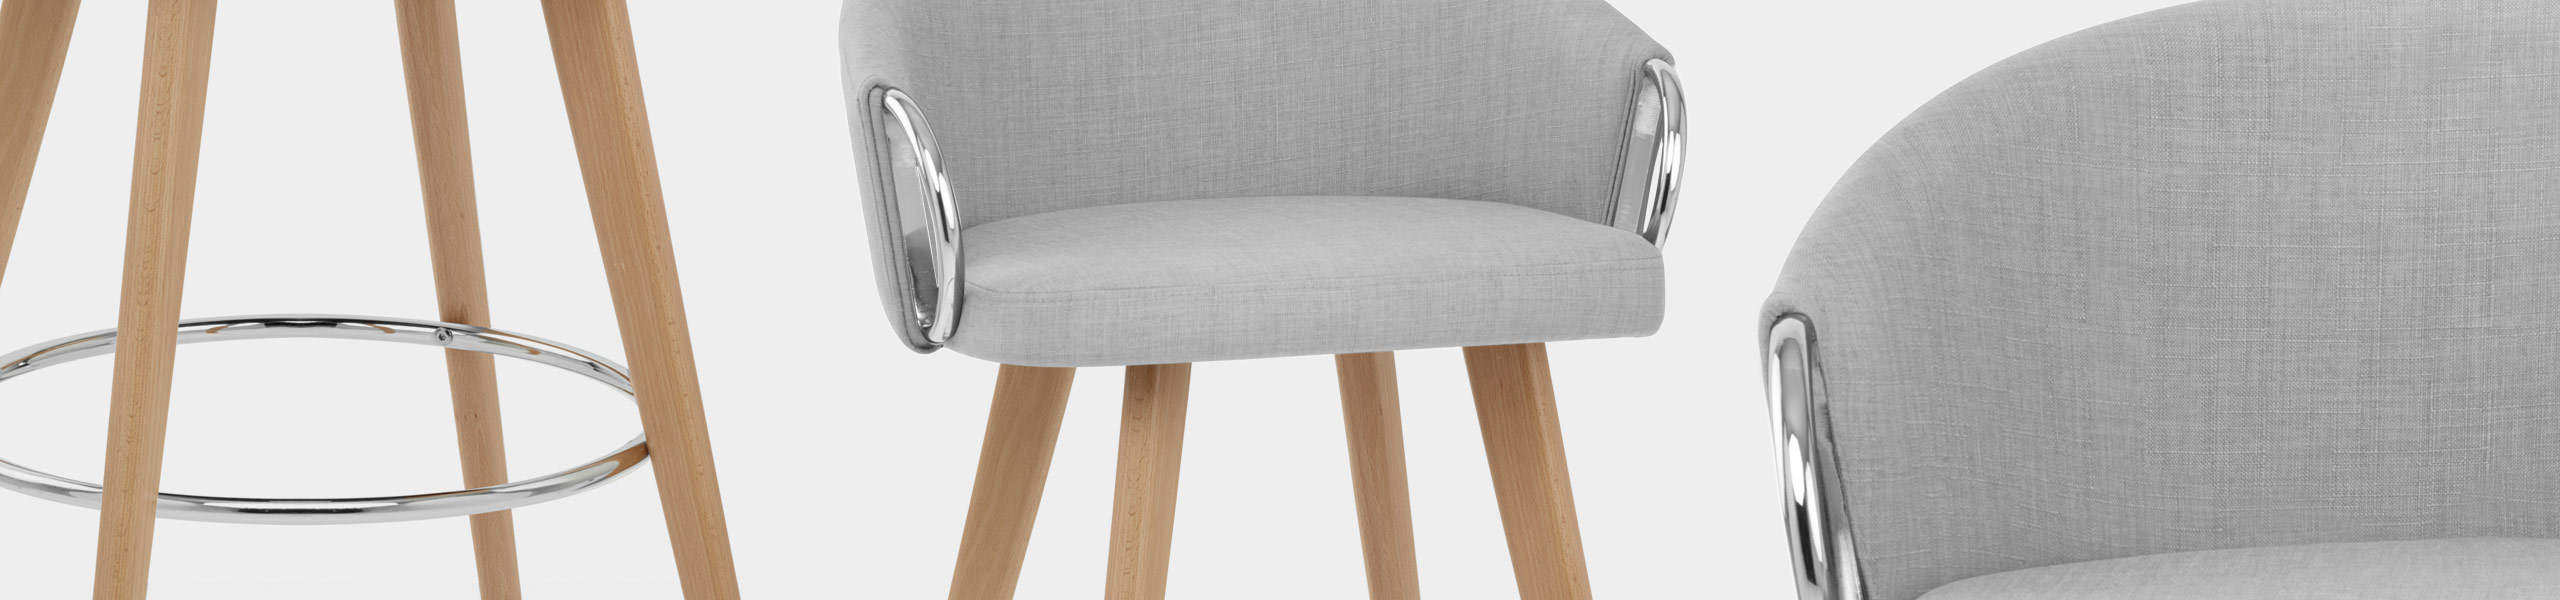 Neo Wooden Stool Grey Fabric Video Banner